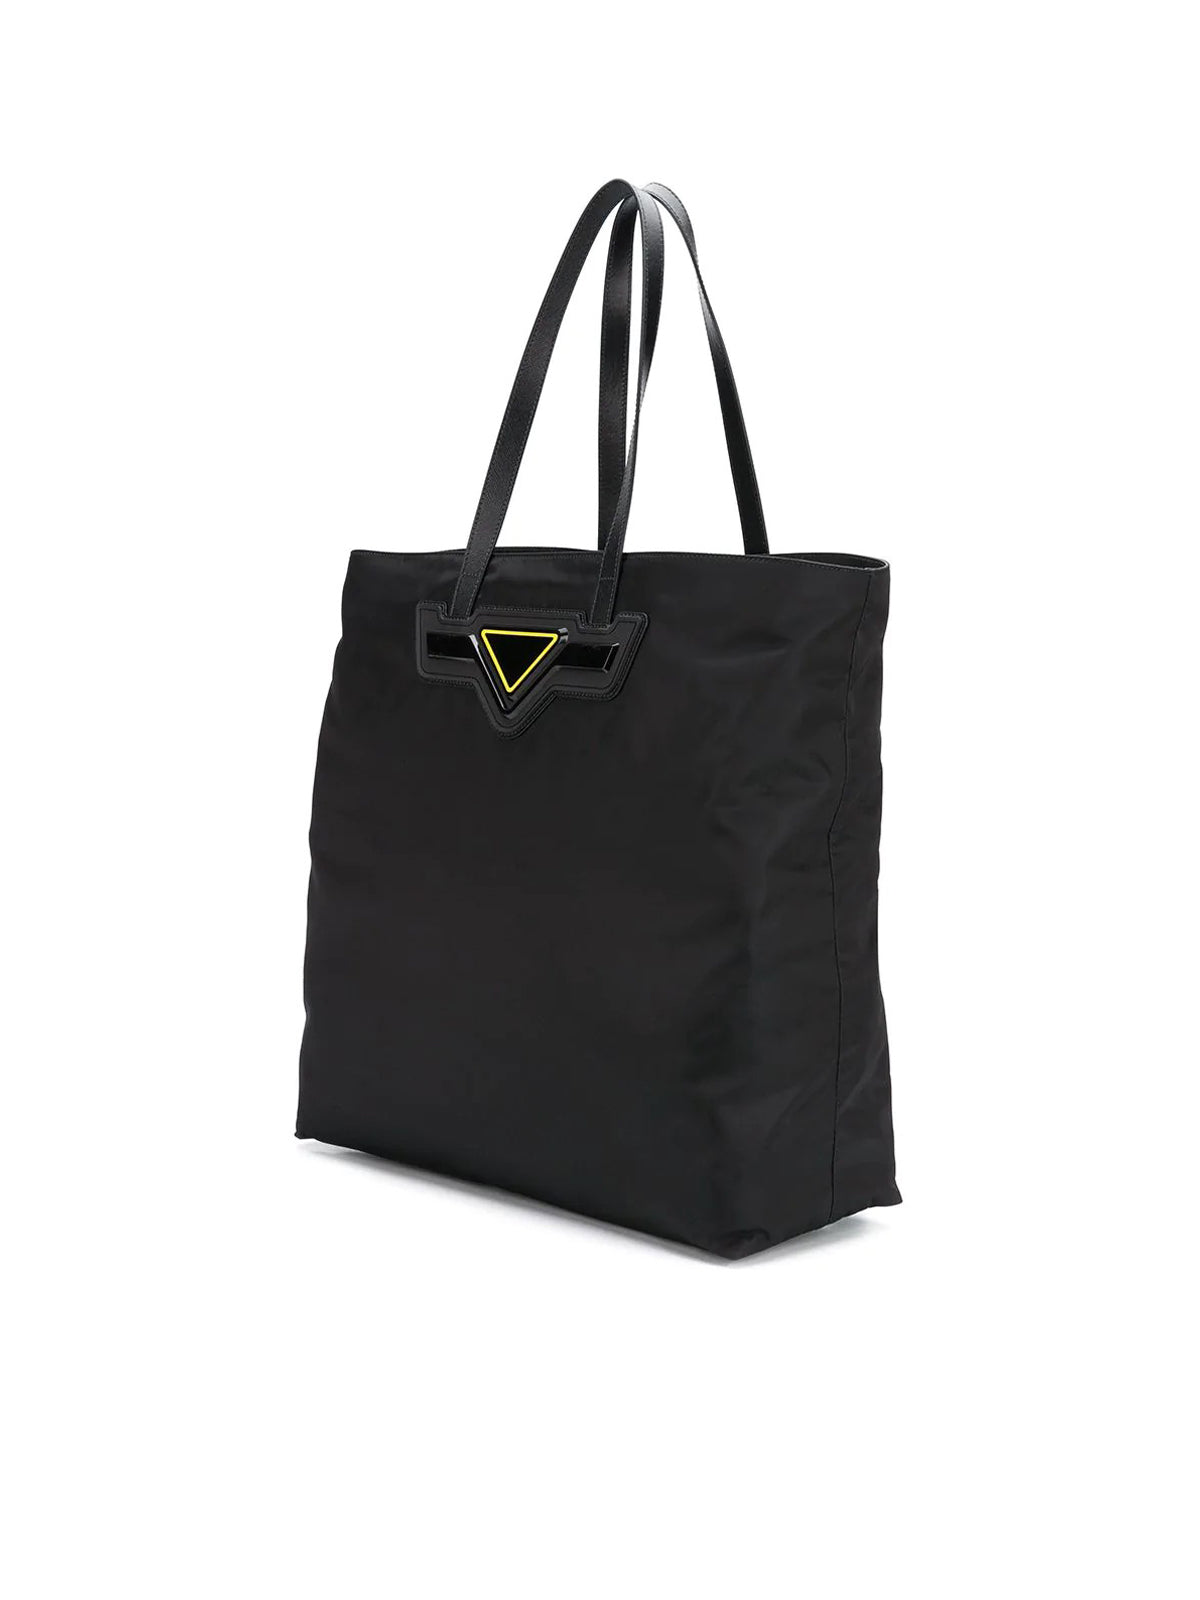 Tote bag with application